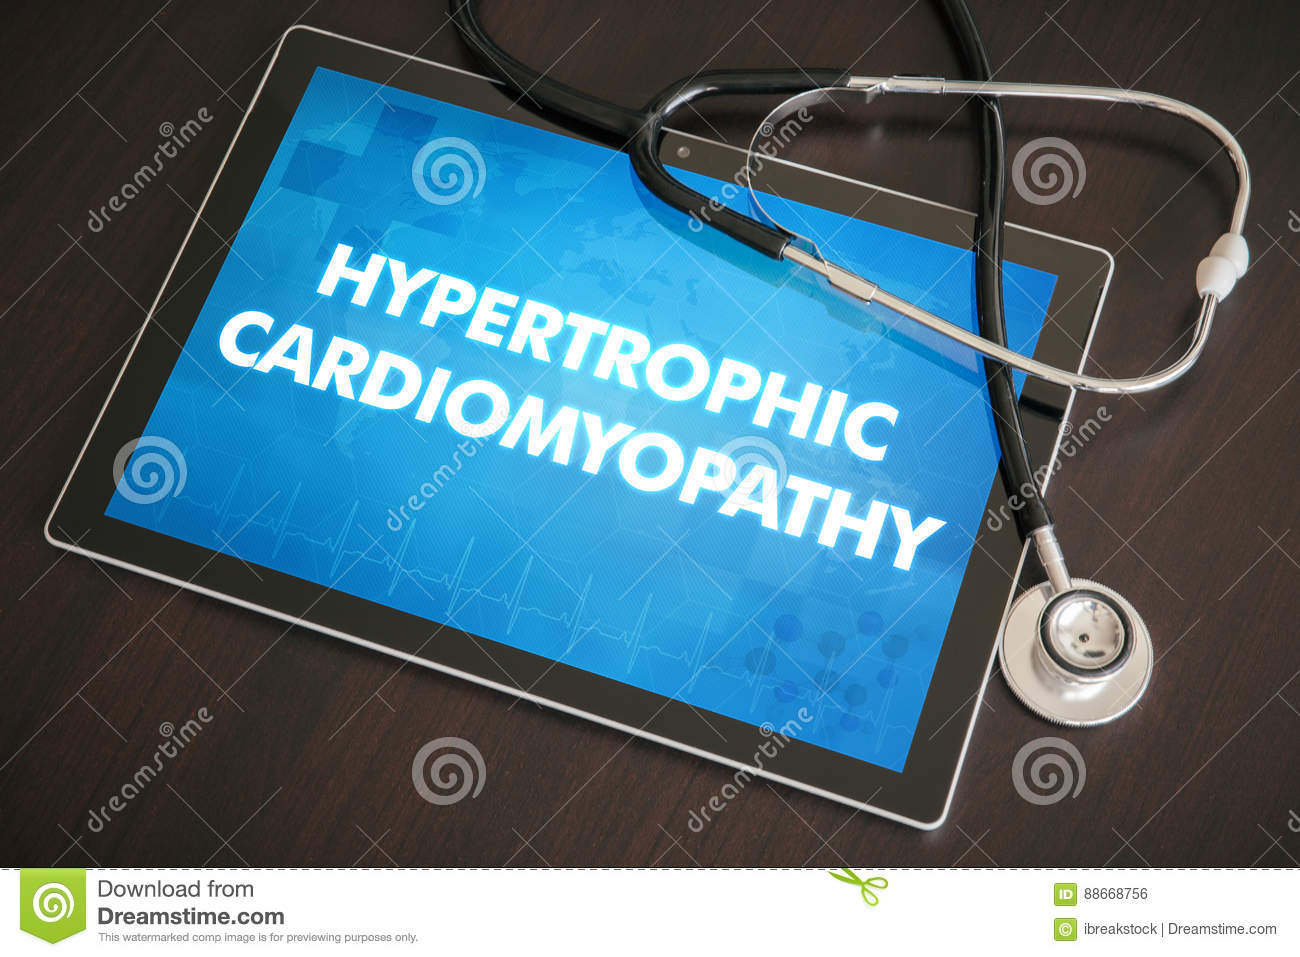 Hypertrophic cardiomyopathy (heart disorder) diagnosis medical c